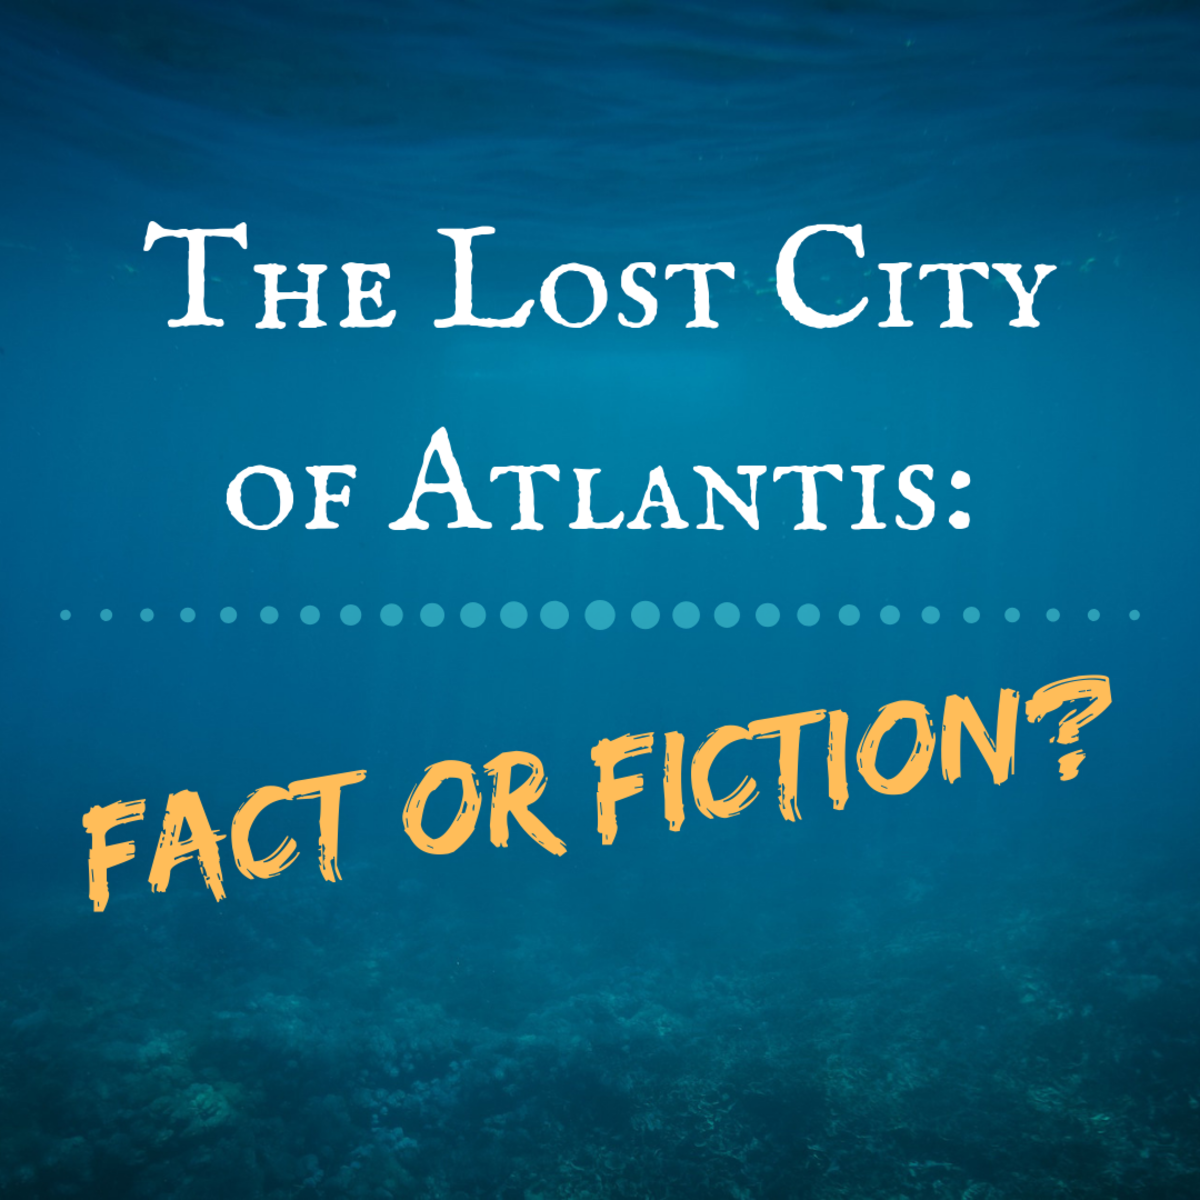 The Greek philosopher Plato wrote about Atlantis, but was his account factual or fictional?